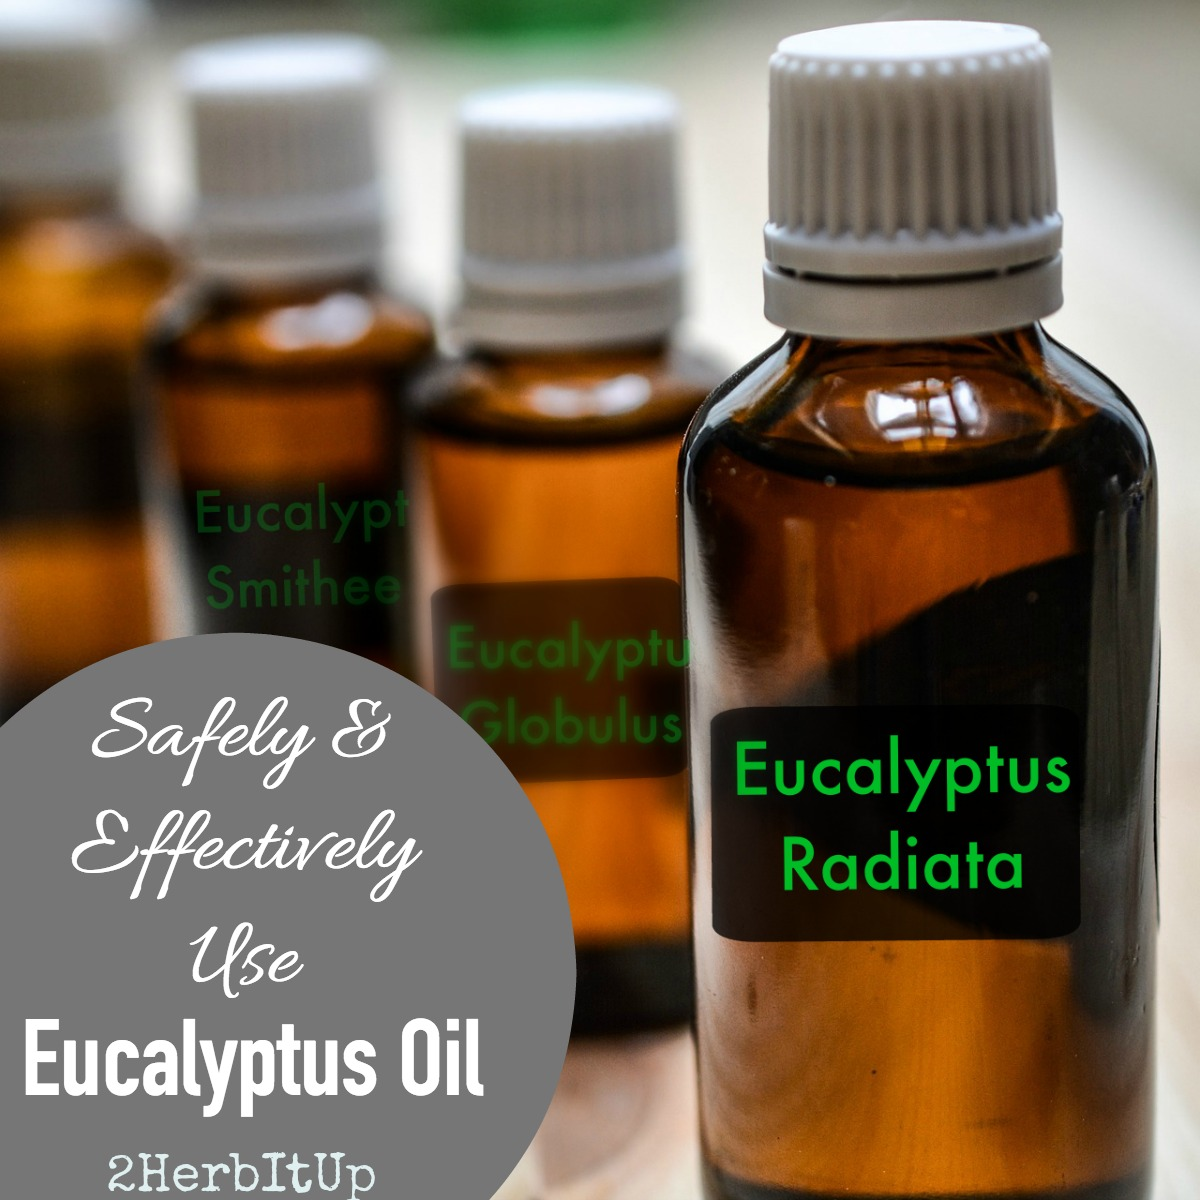 Properties, uses and safety precautions of using eucalyptus essential oil.